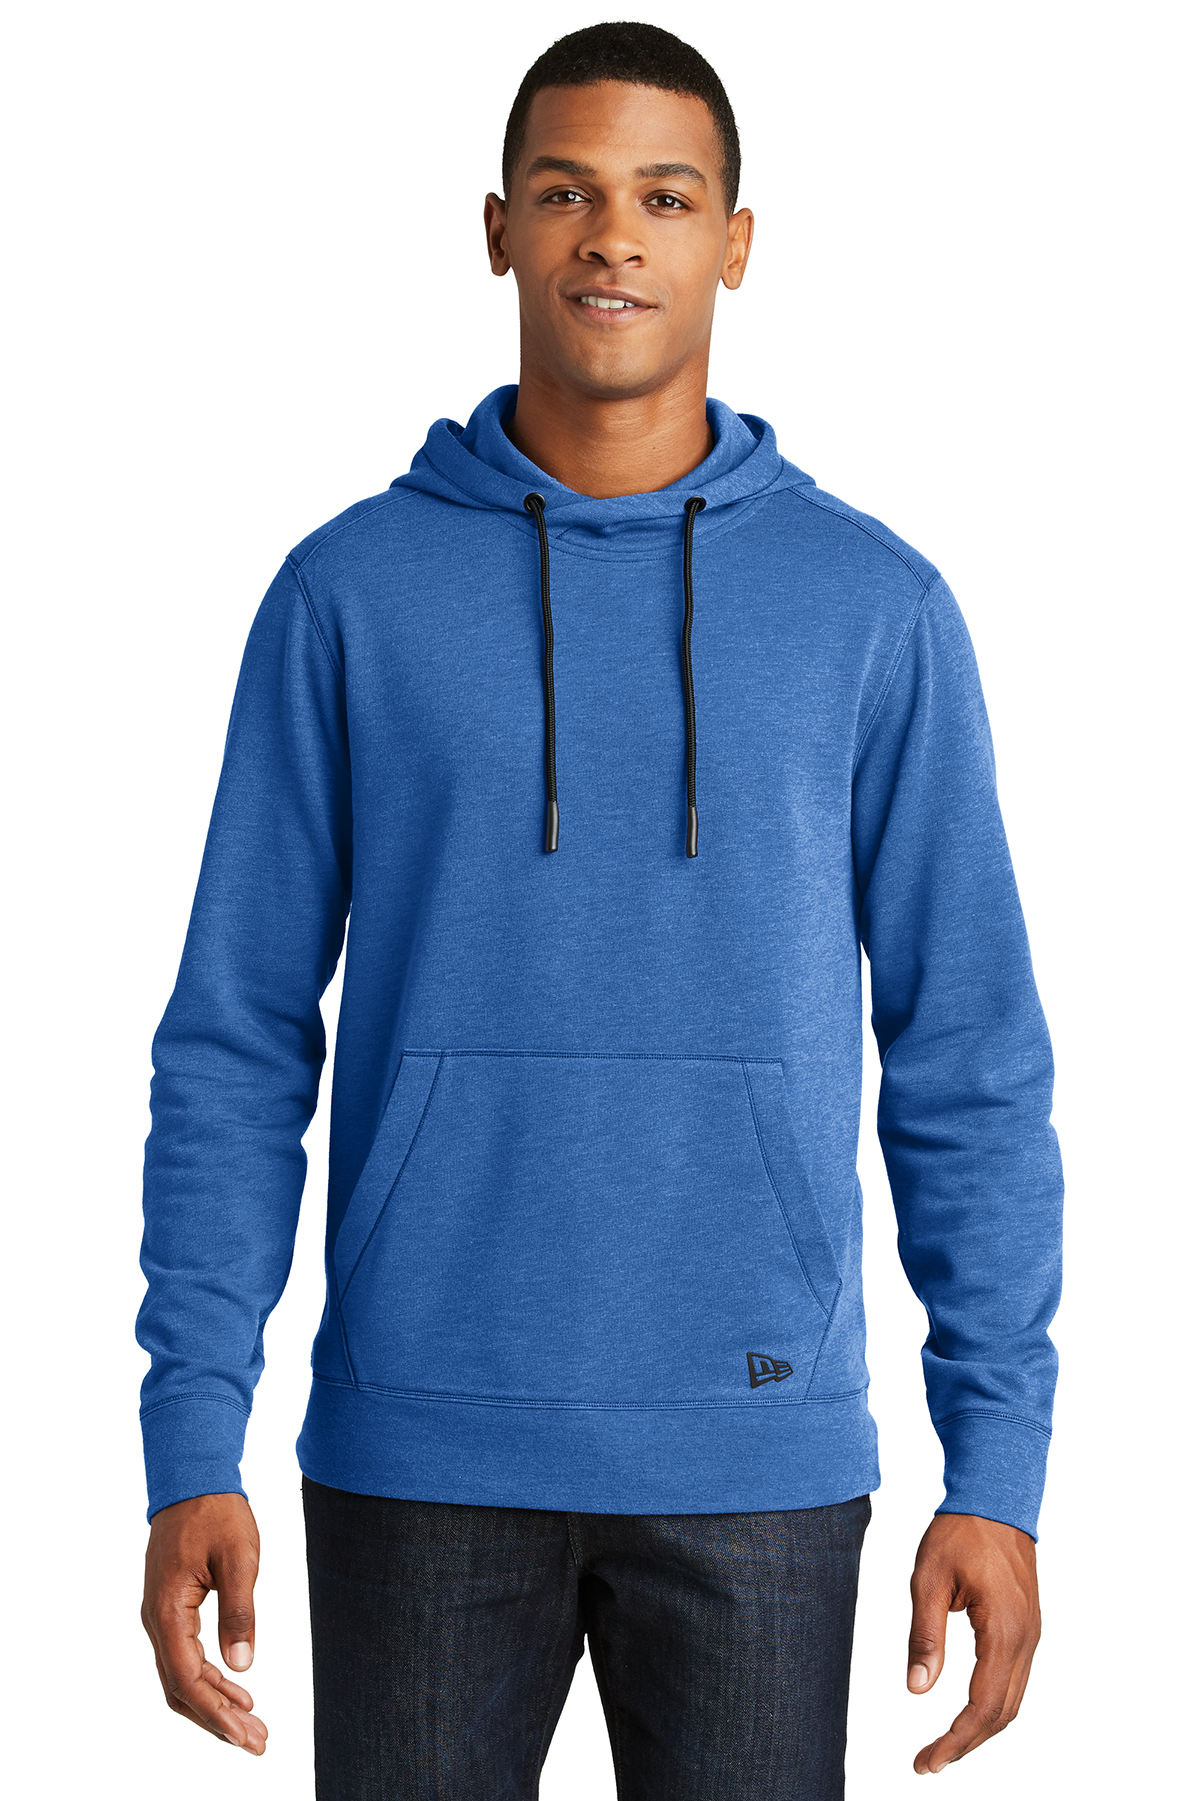 New Era NEA510 - Men's Tri-Blend Fleece Pullover Hoodie